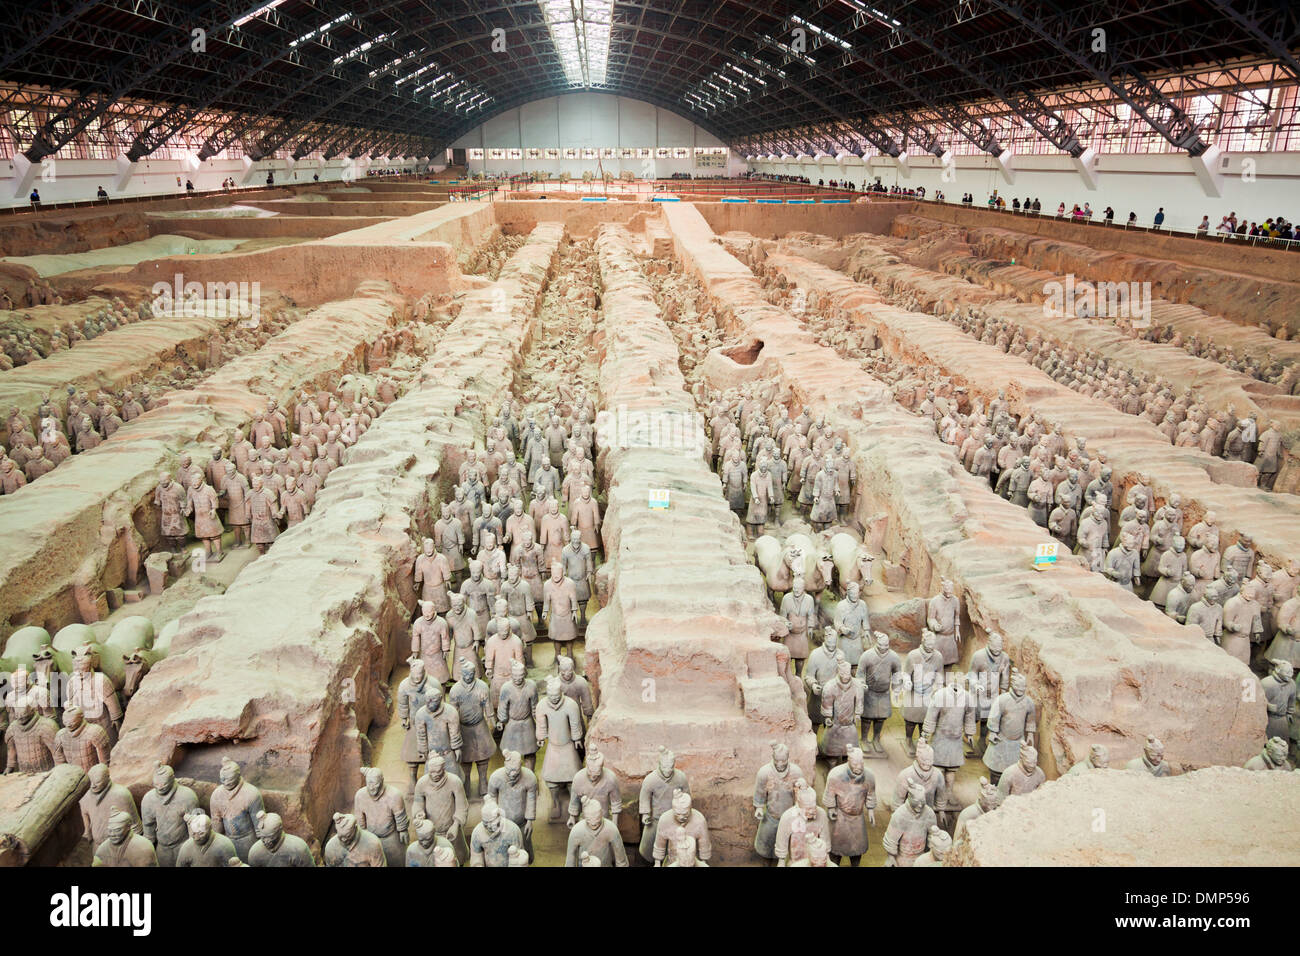 Inside the museum of the Terracotta Warriors Army Pit Number 1, Xian, Shaanxi Province, PRC, People's Republic of China, Asia - Stock Image